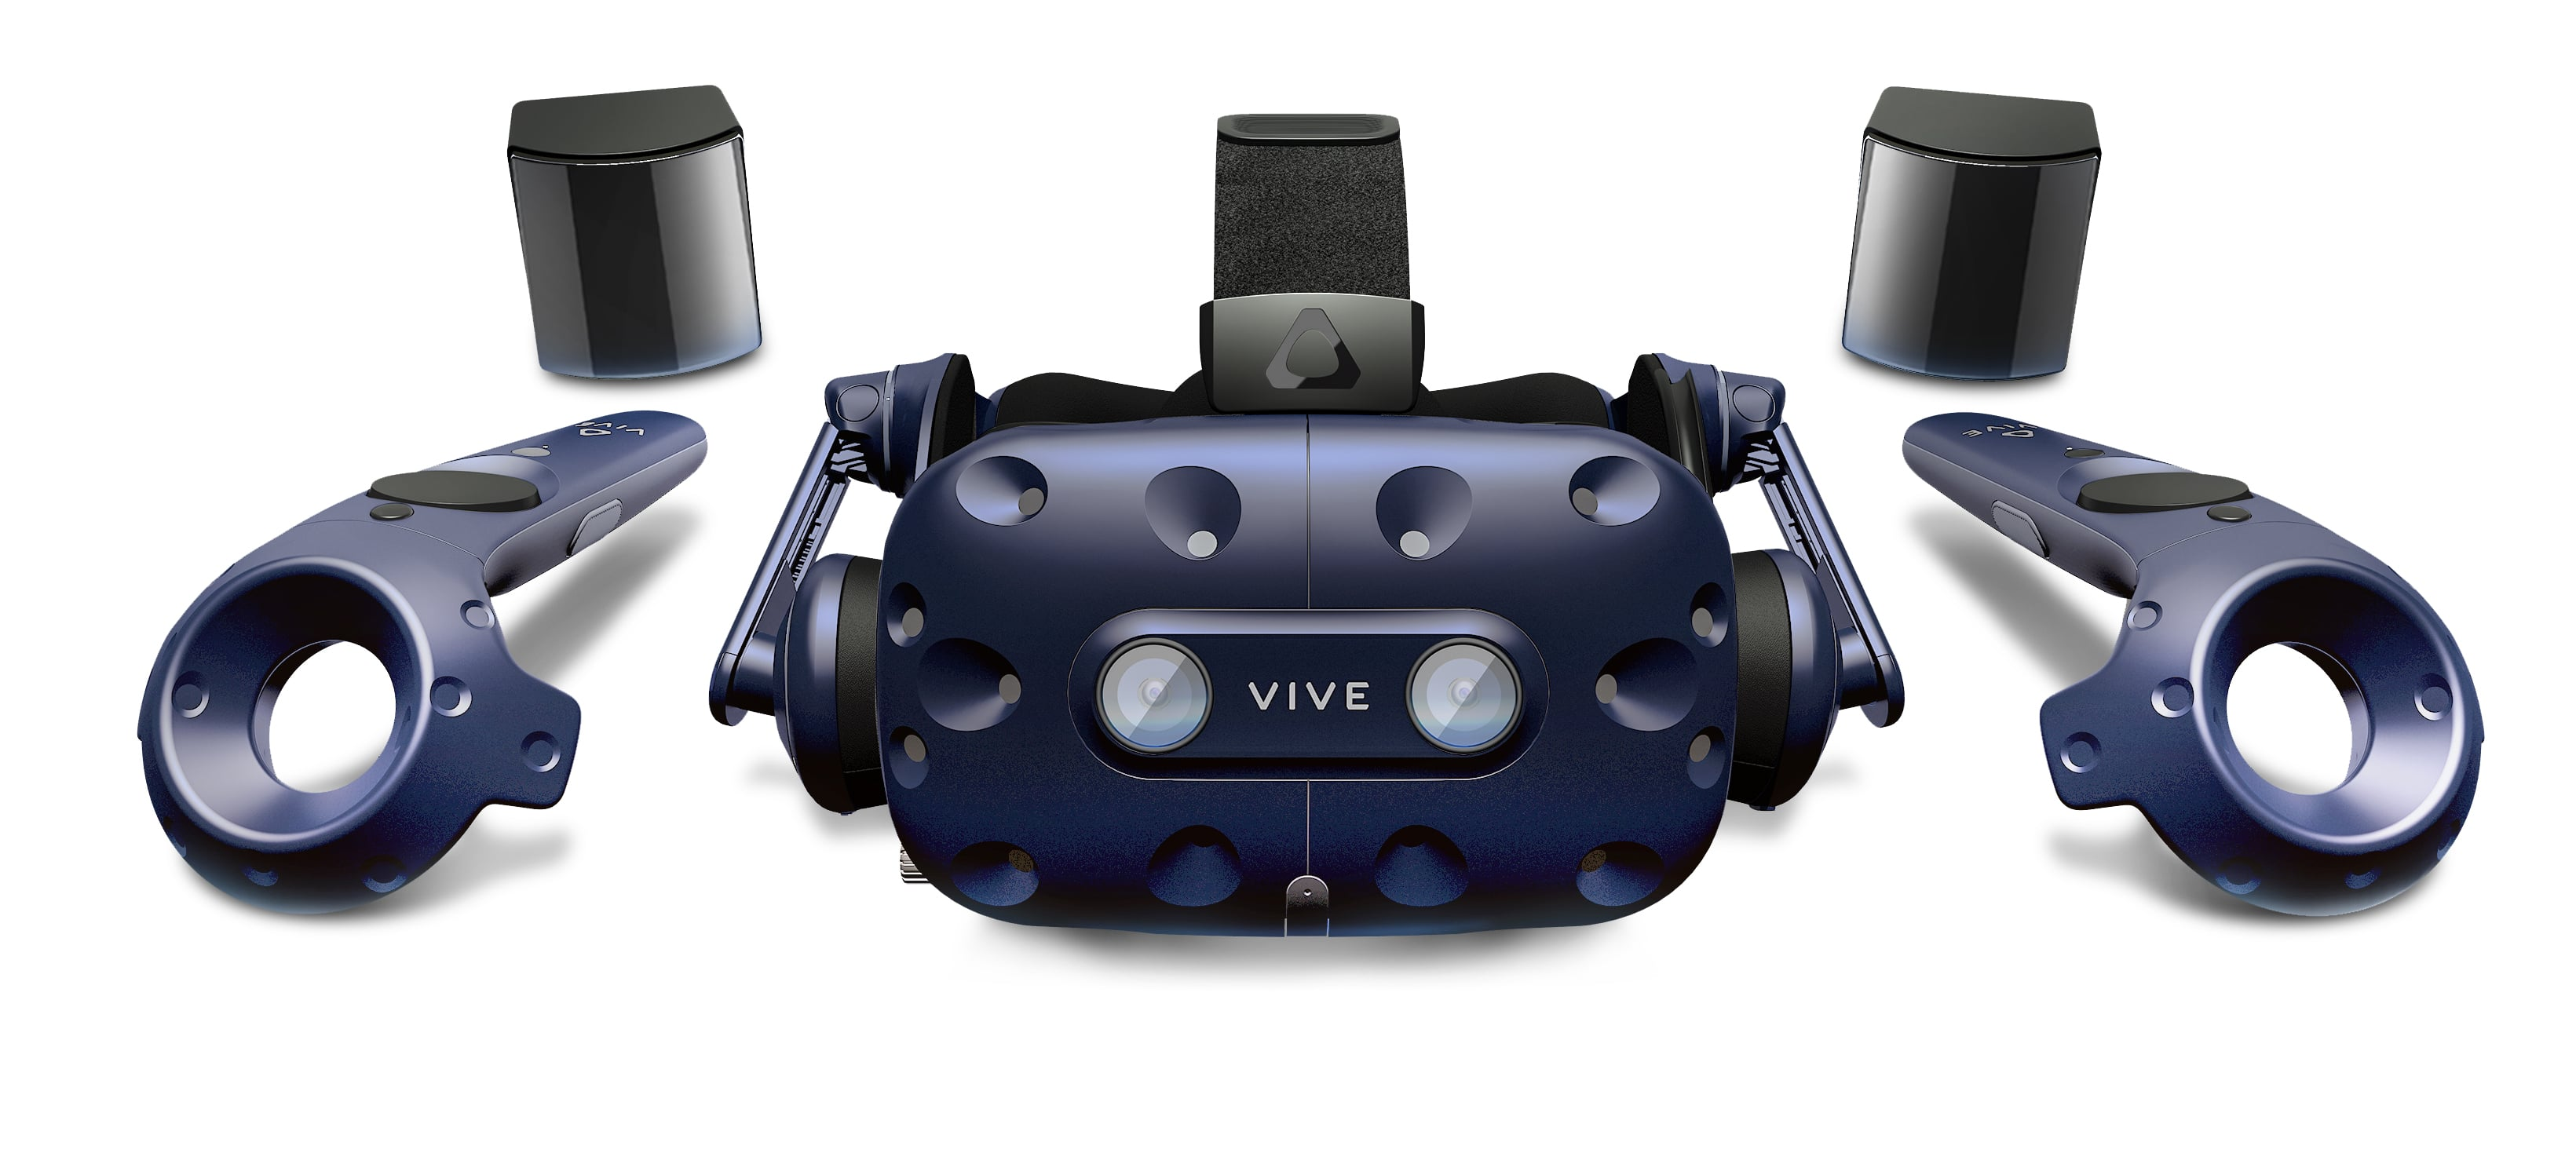 HTC VIVE LAUNCHES VIVE PRO FOR ENTERPRISES TO GROW VR-BASED